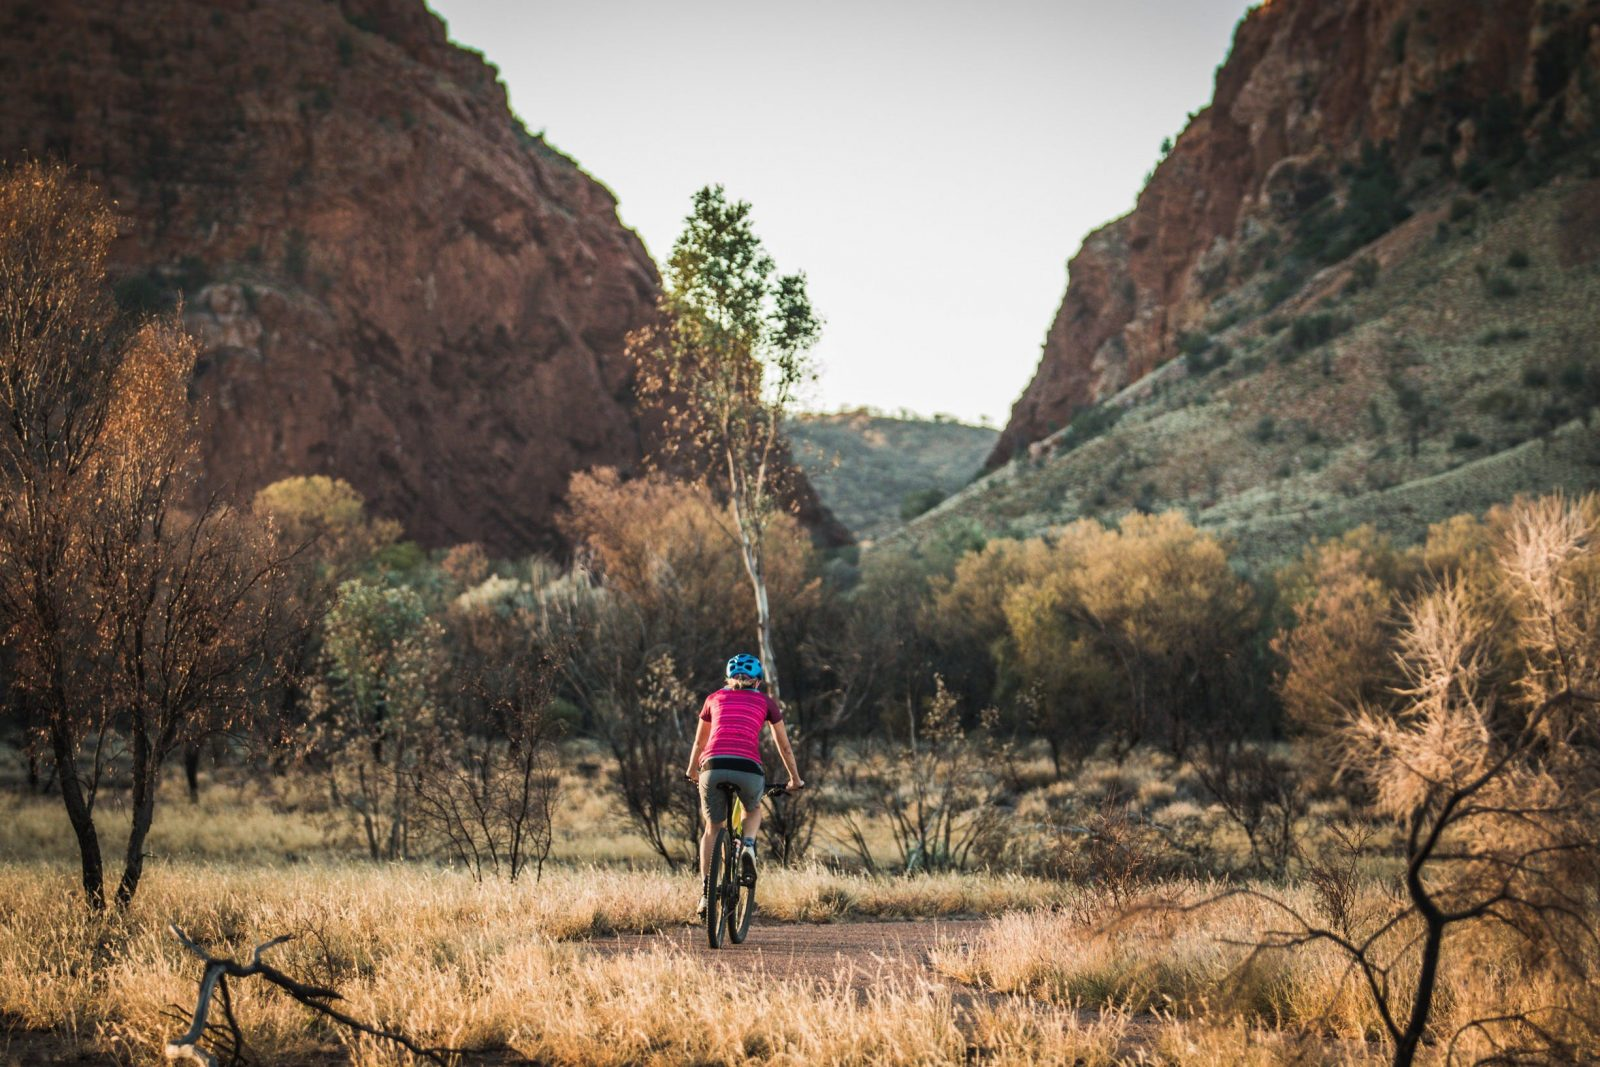 A woman rides a mountain bike on the bike path towards Simpsons Gap